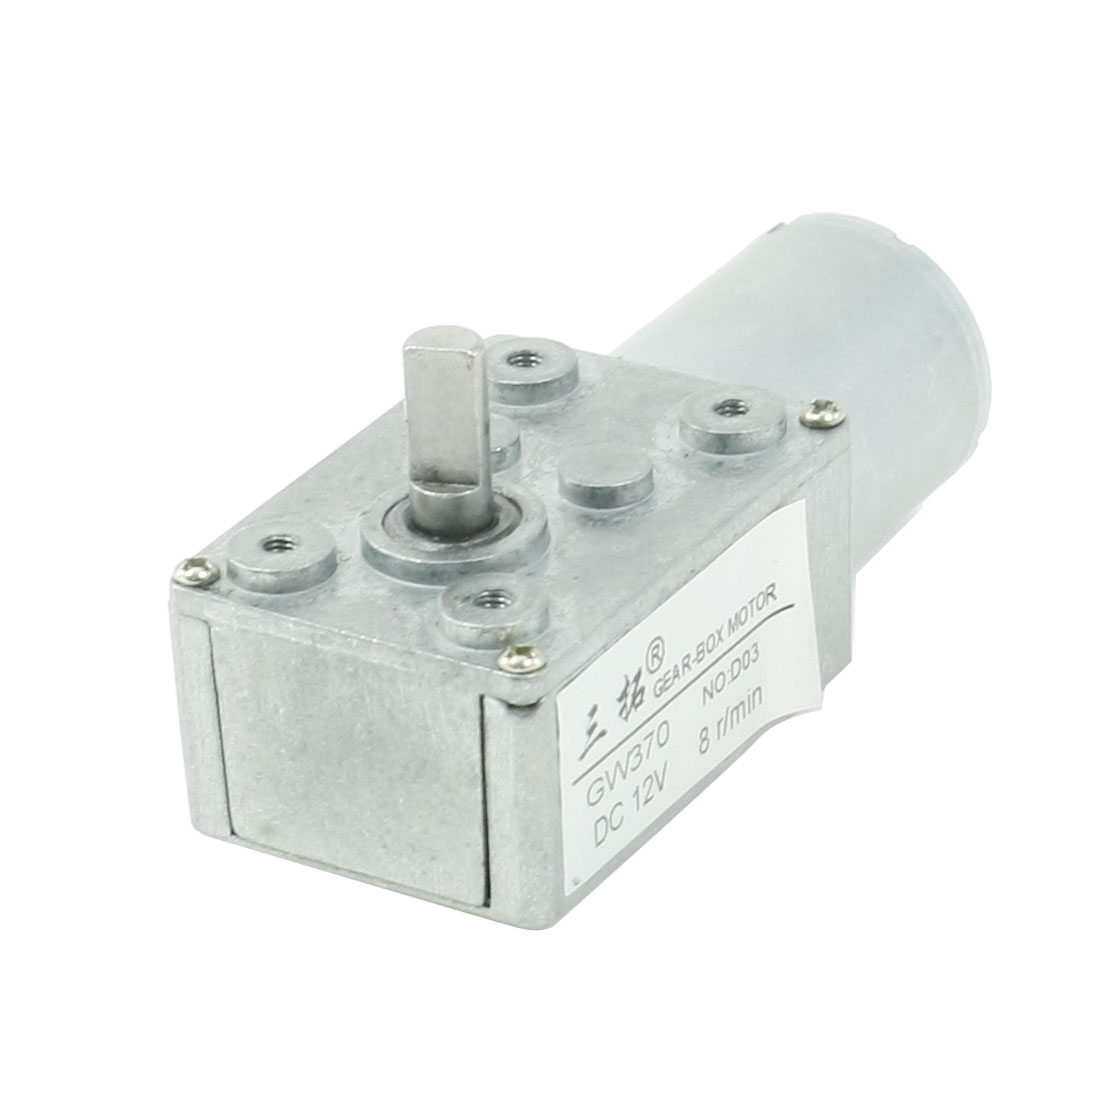 6mm-Shaft-Rectangle-Gear-Box-2-Terminals-Electric-Geared-Motor-DC-12V-8RPM